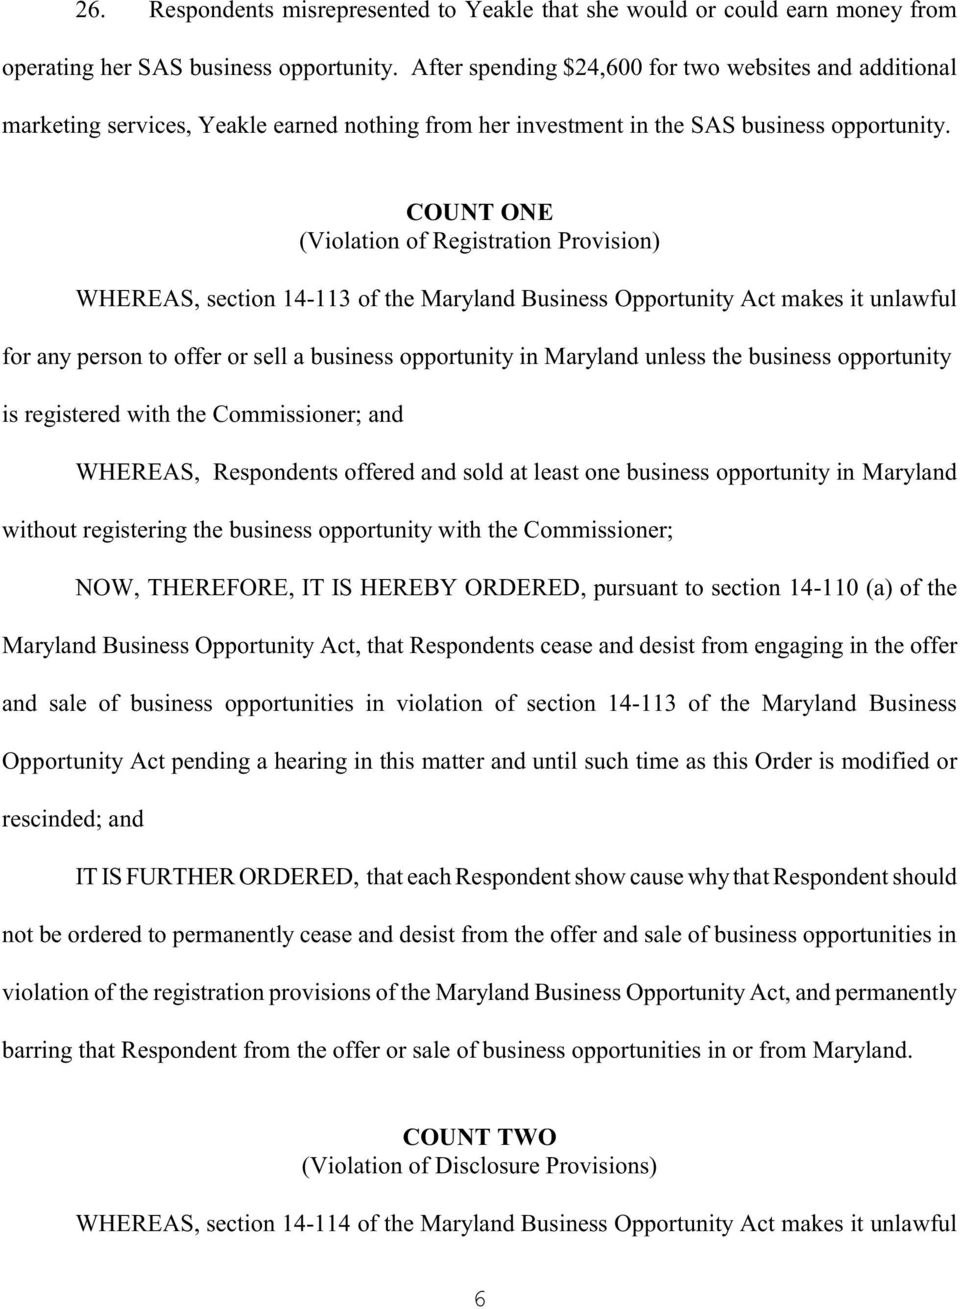 COUNT ONE (Violation of Registration Provision) WHEREAS, section 14-113 of the Maryland Business Opportunity Act makes it unlawful for any person to offer or sell a business opportunity in Maryland